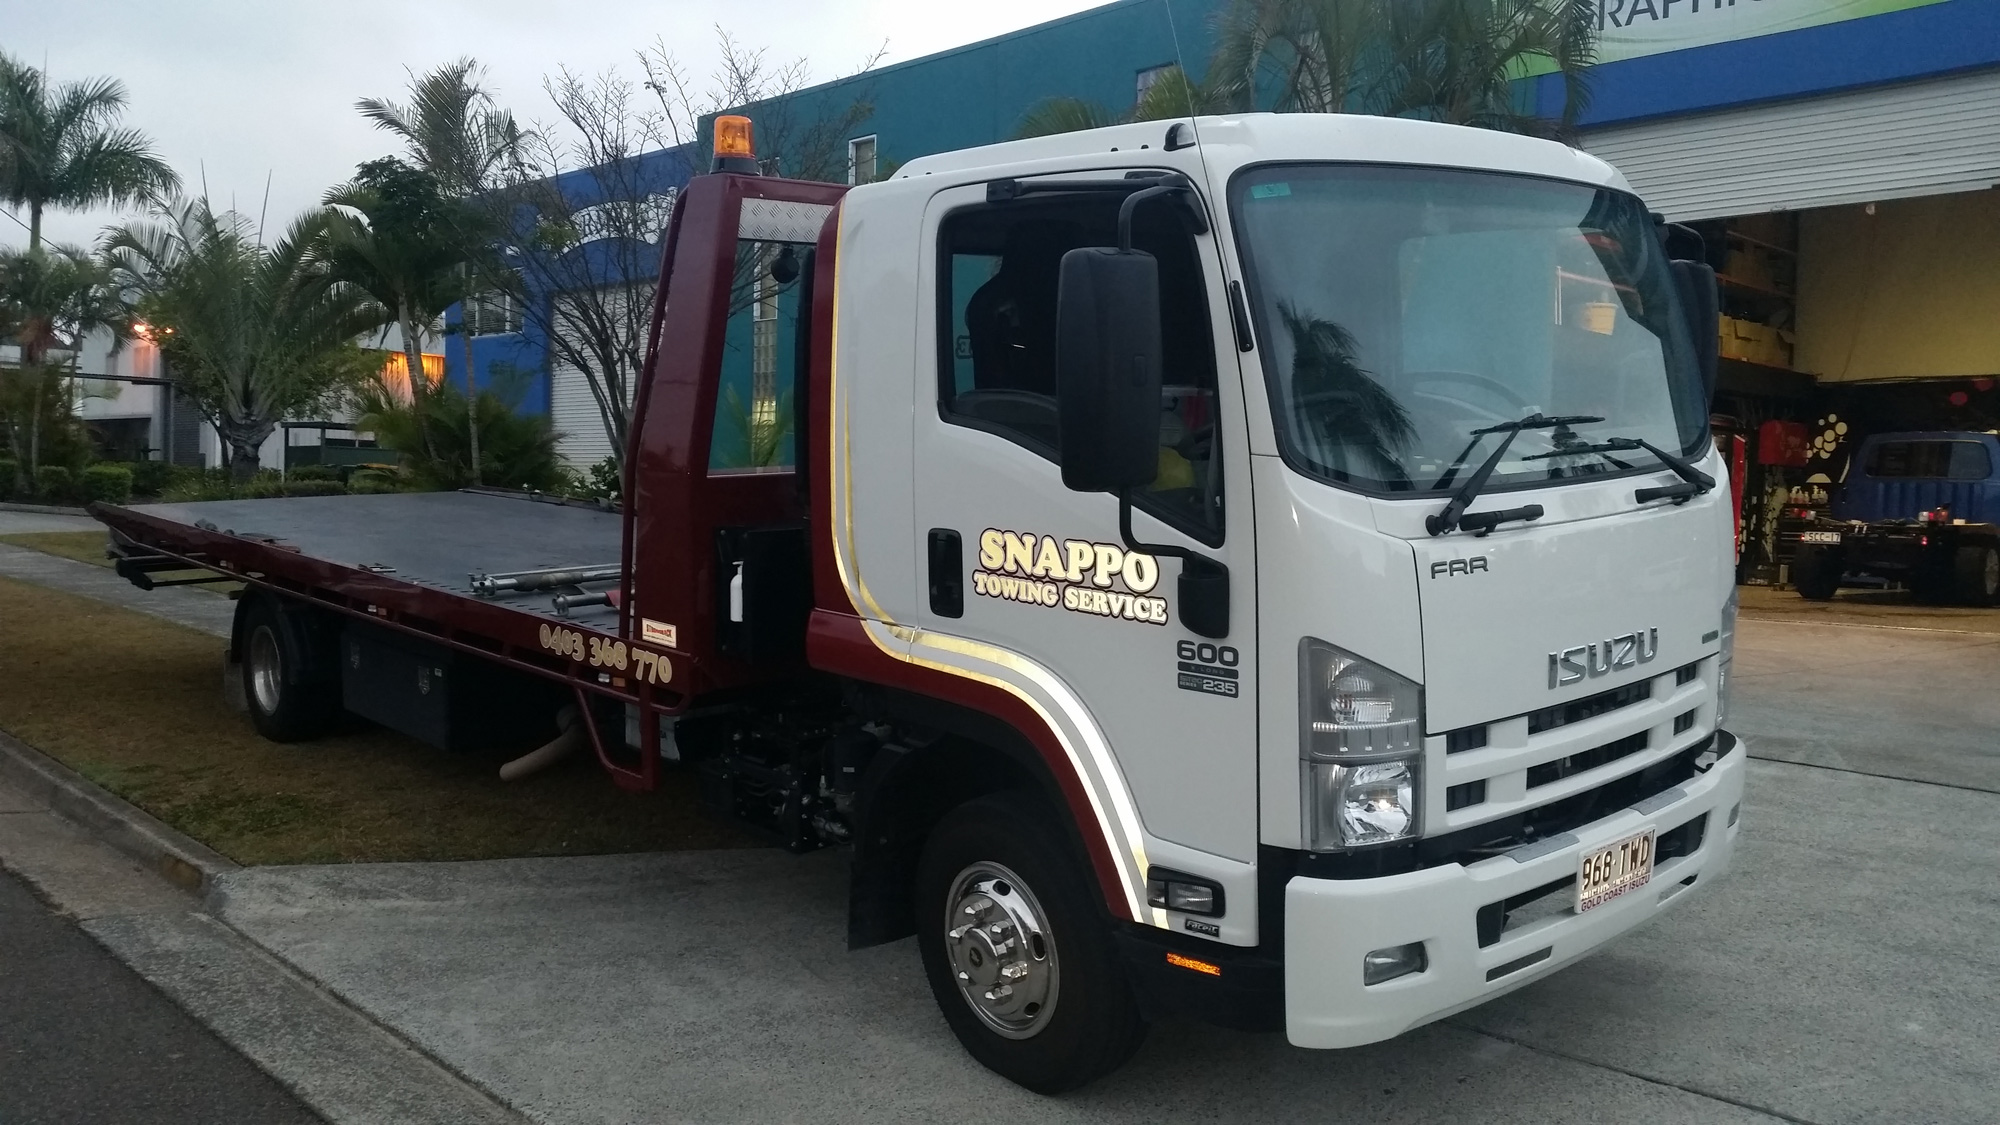 Snappo-Towing